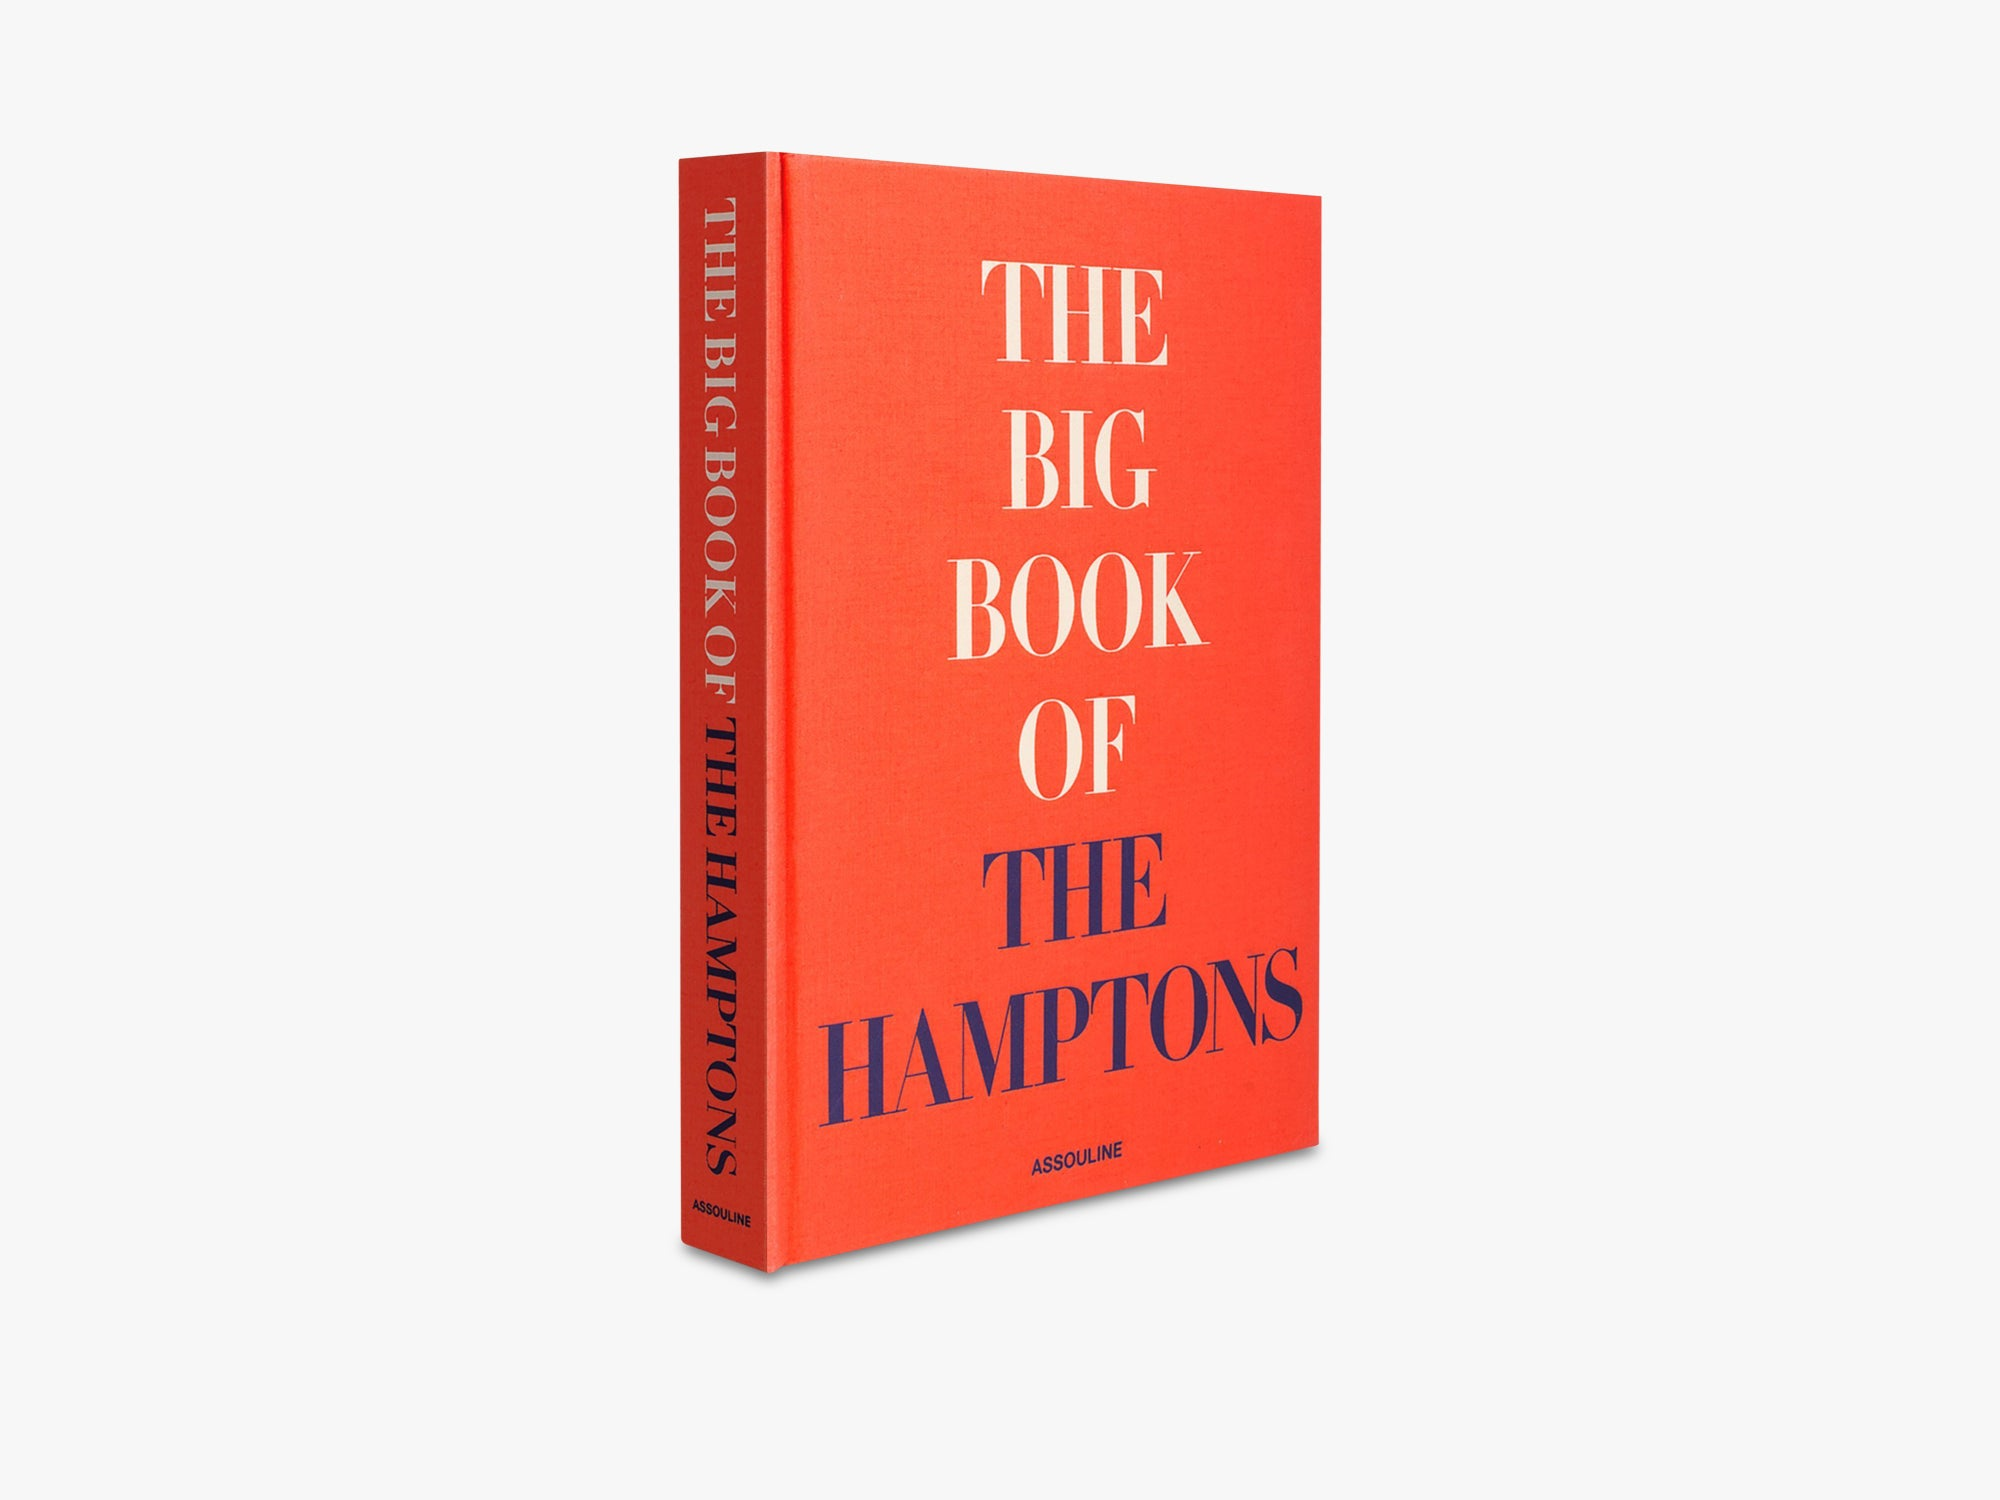 The Big Book of the Hamptons fra Assouline